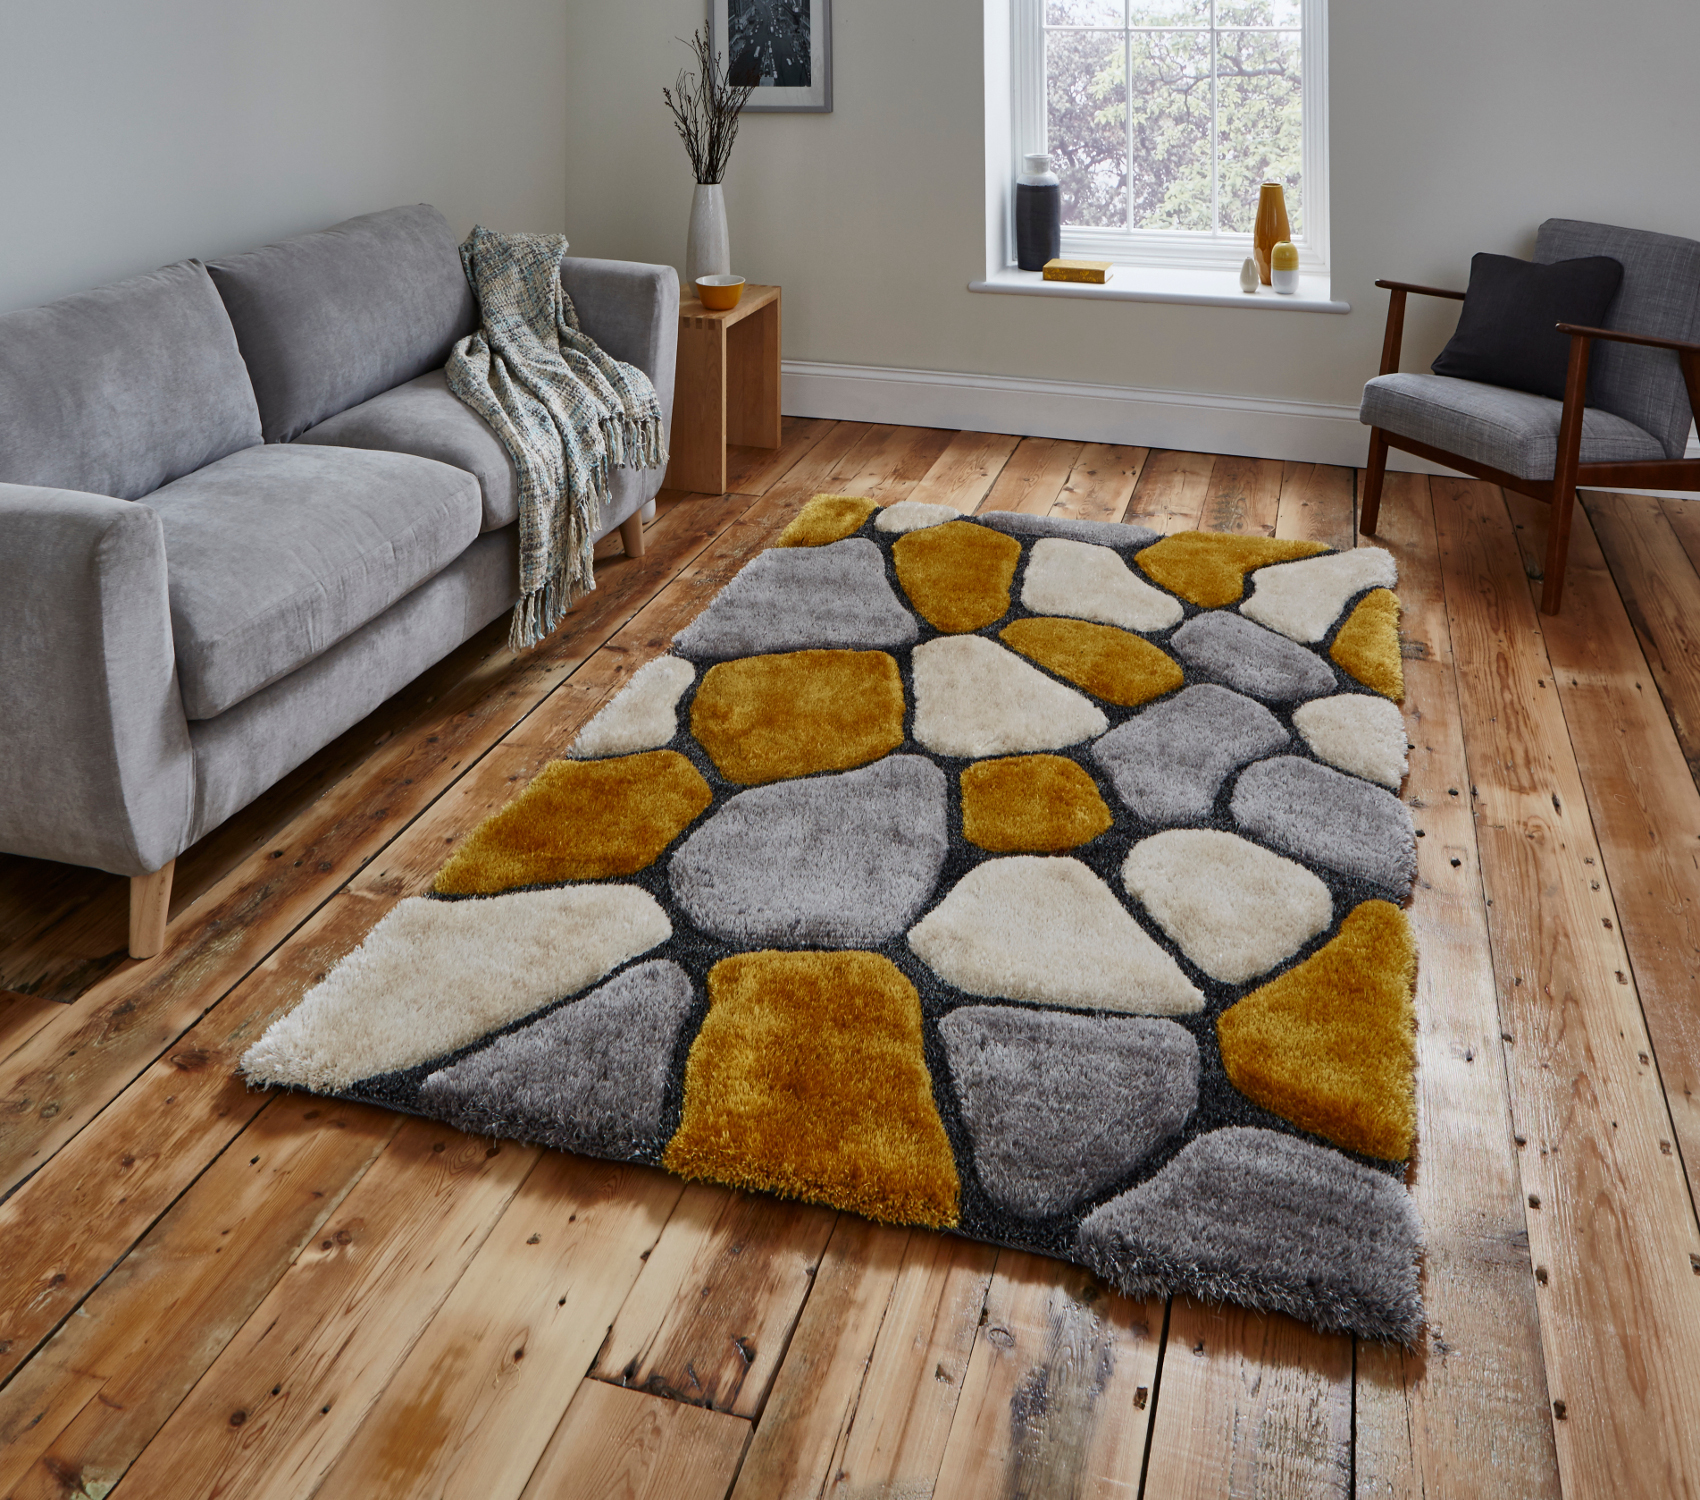 These Hand Tufted Acrylic And Soft Polyester Rugs Have A Multi Textured  Pile With A Striking 3D Pebble Design Throughout And Would Make The Perfect  ...